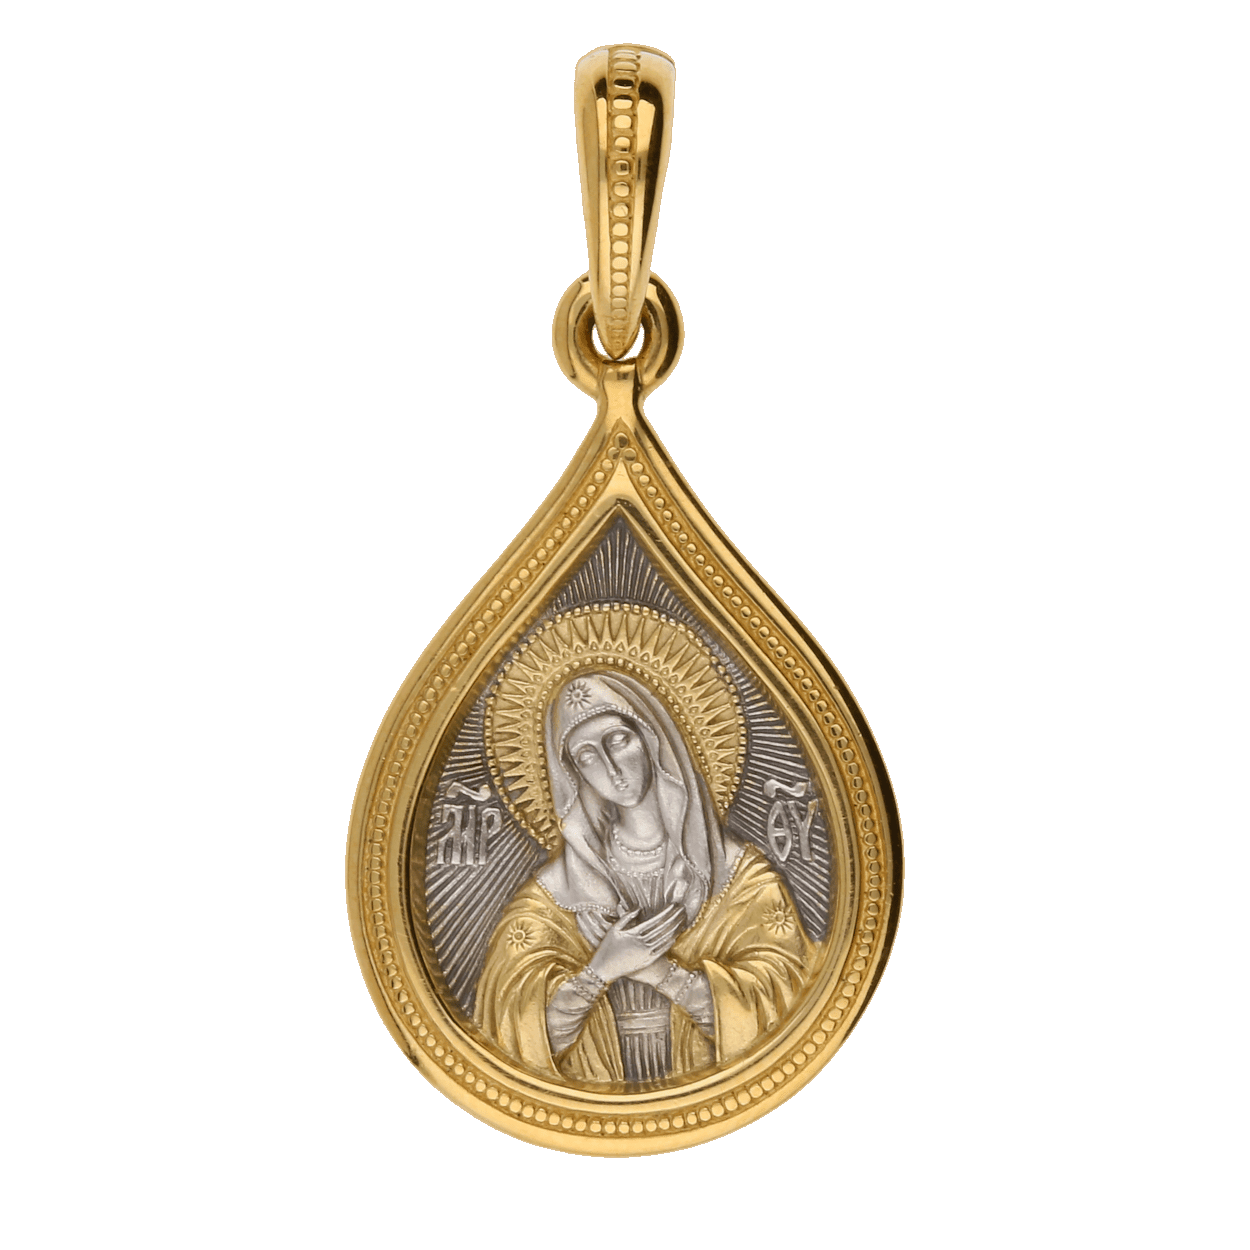 IS011_A-Russian-Orthodox-Icon-silver-medal-pendant-Virgin-Mary-Theotokos-ELEUSA-Master-Jeweler-Fedorov-min (1)-min